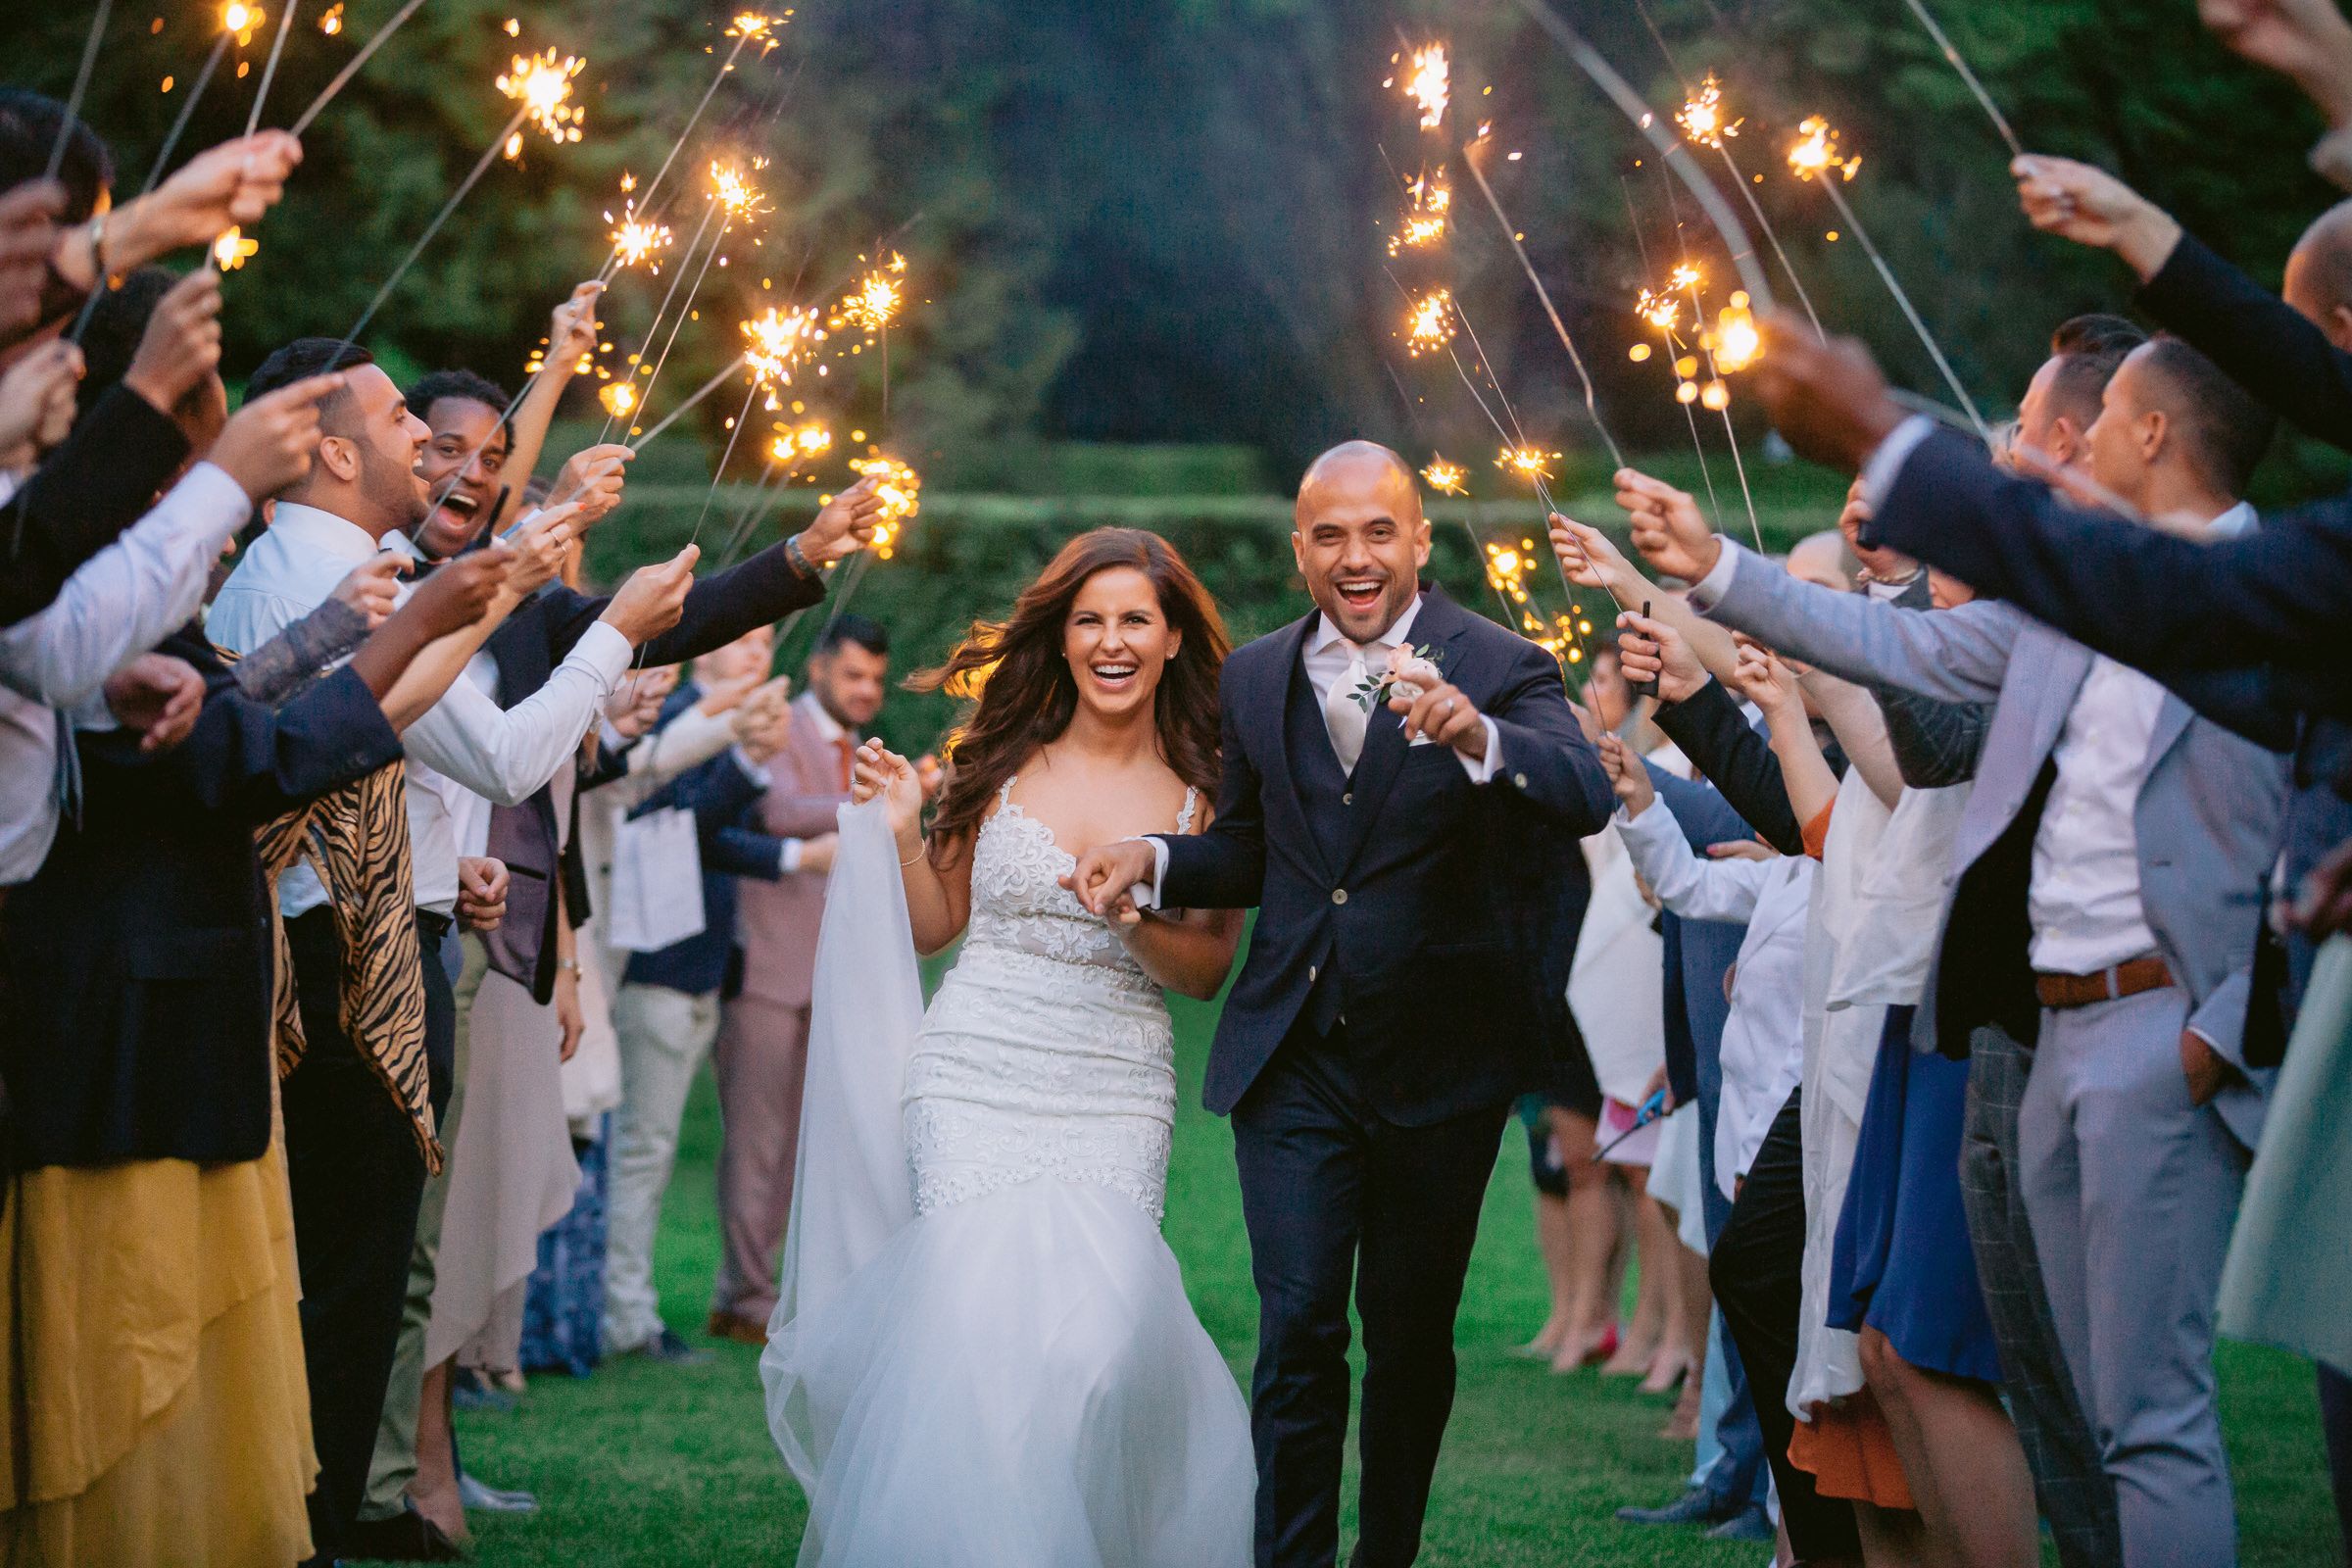 Happy couple walking through tunnel of sparklers - photo by Peter van der Lingen Wedding Photography